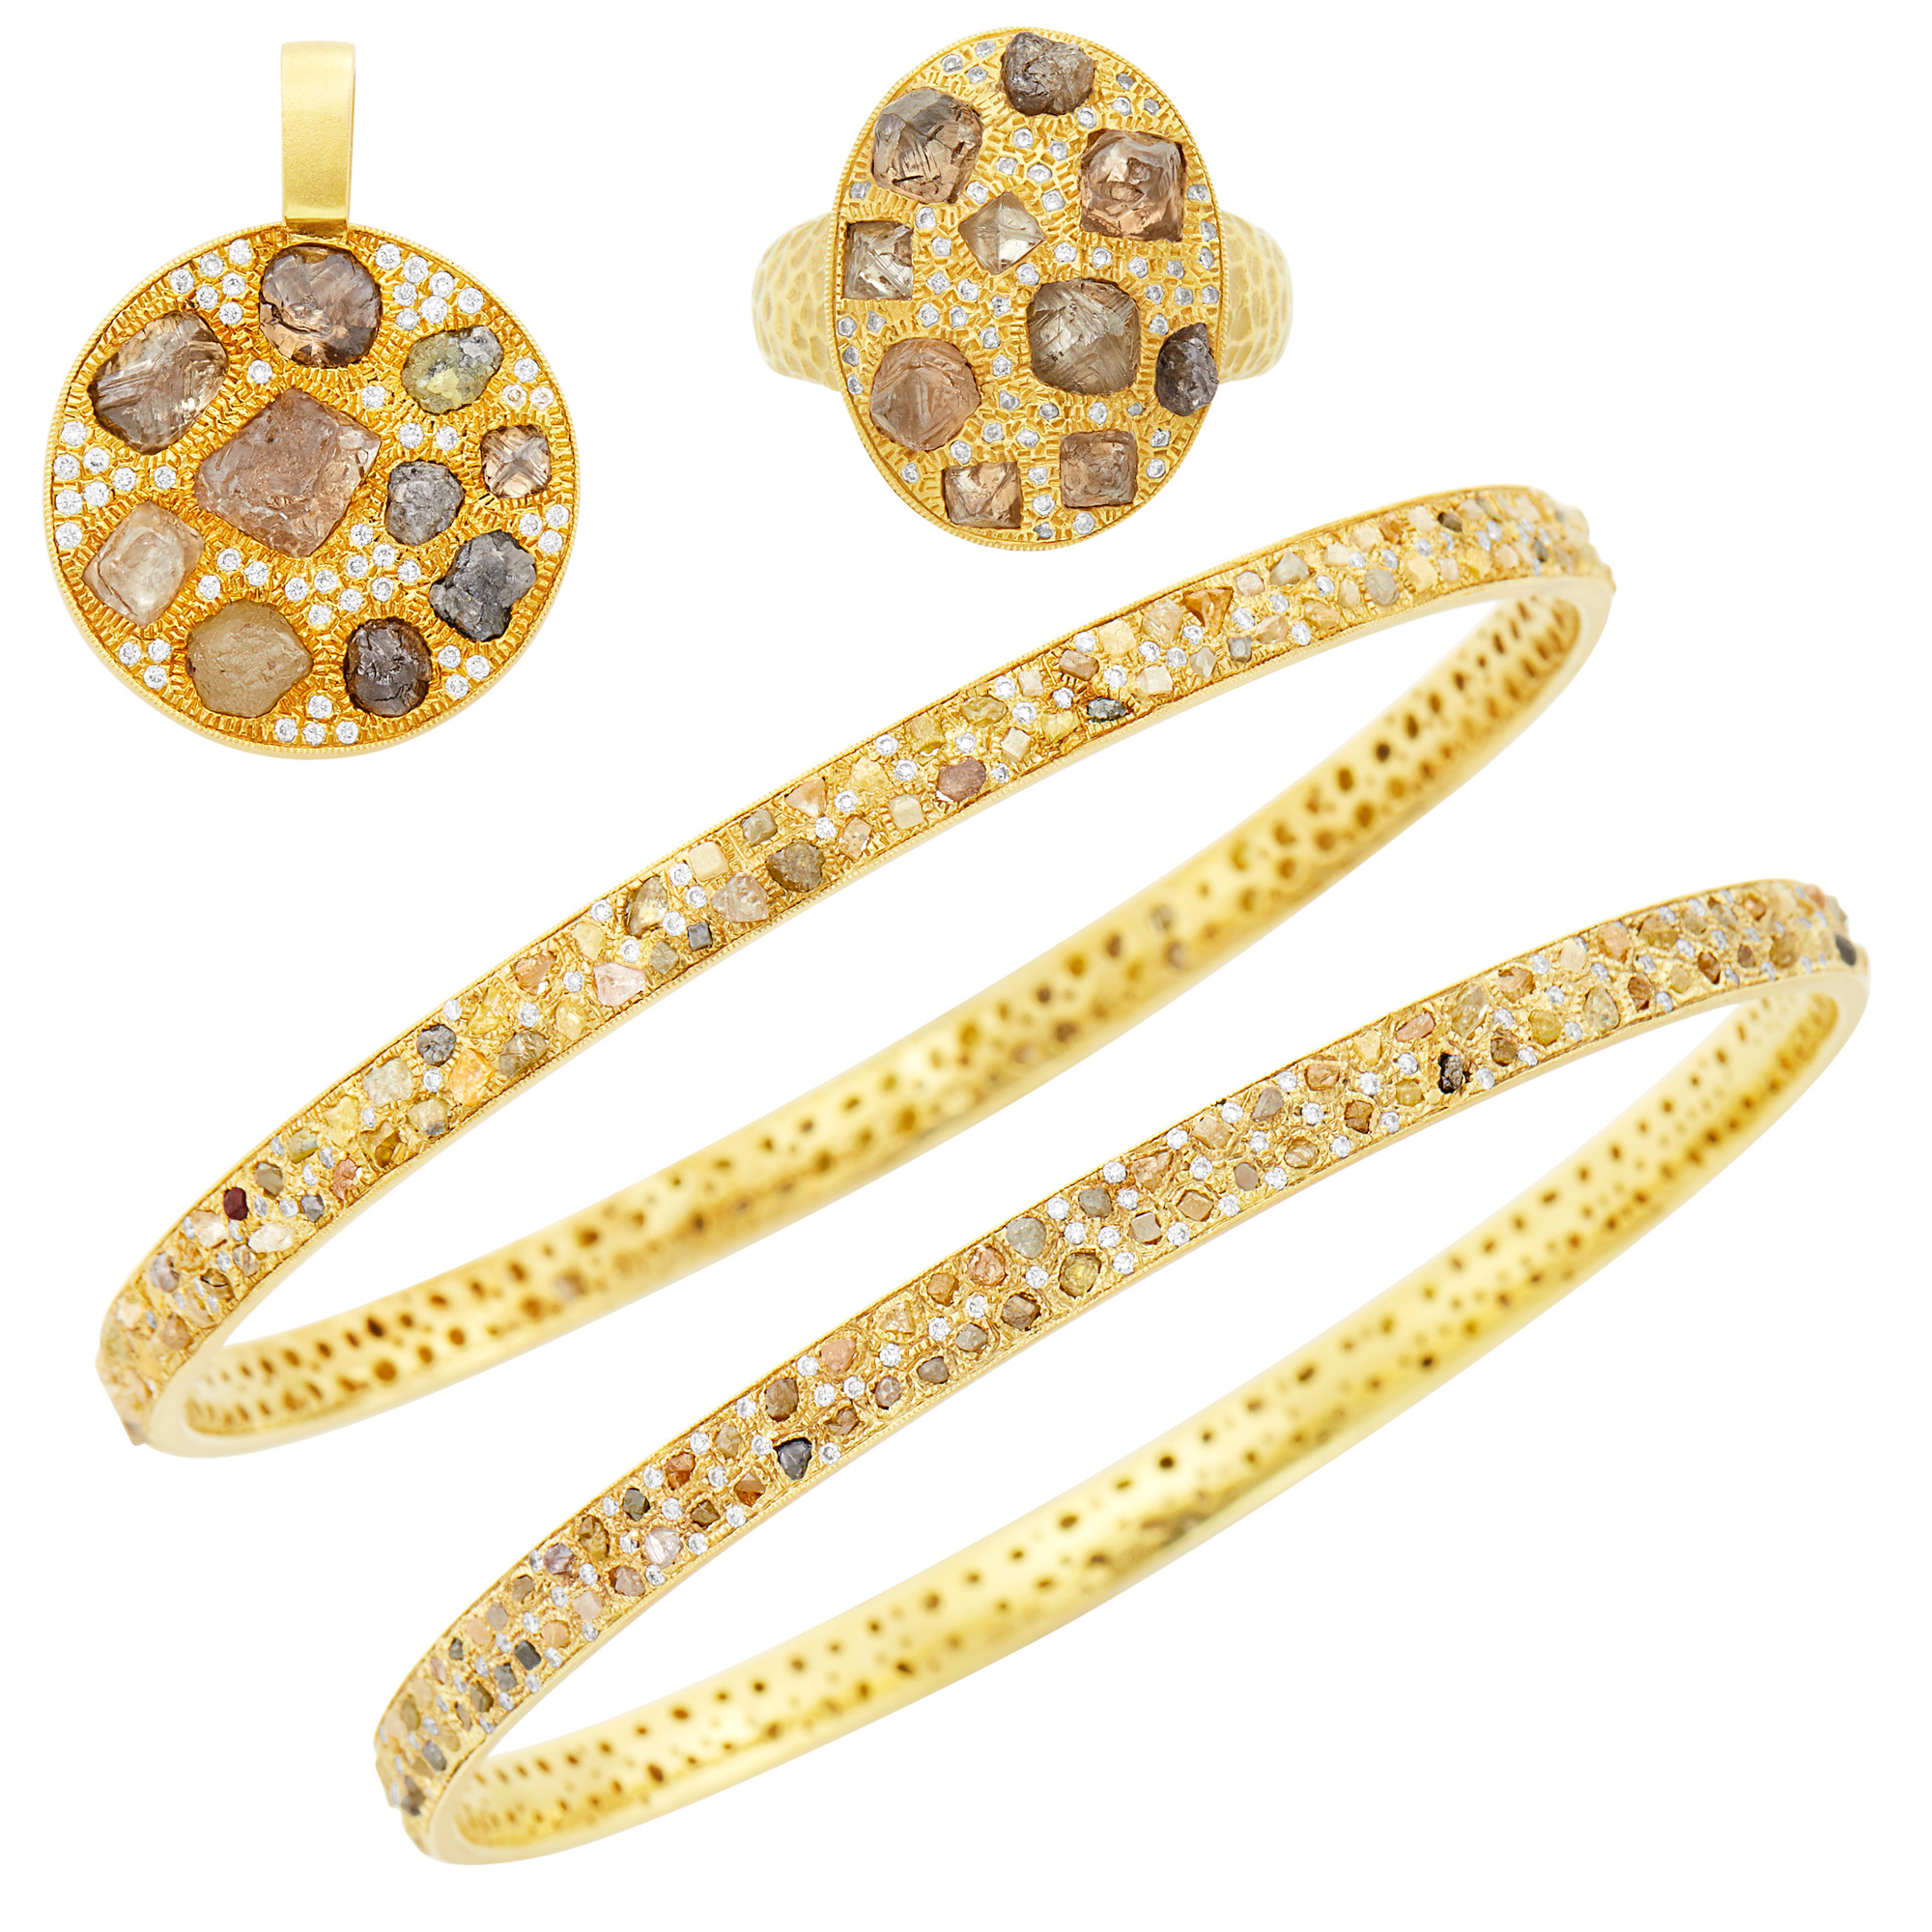 Lot image - Pair of Gold, Rough Diamond and Diamond Bangle Bracelets, Ring and Pendant